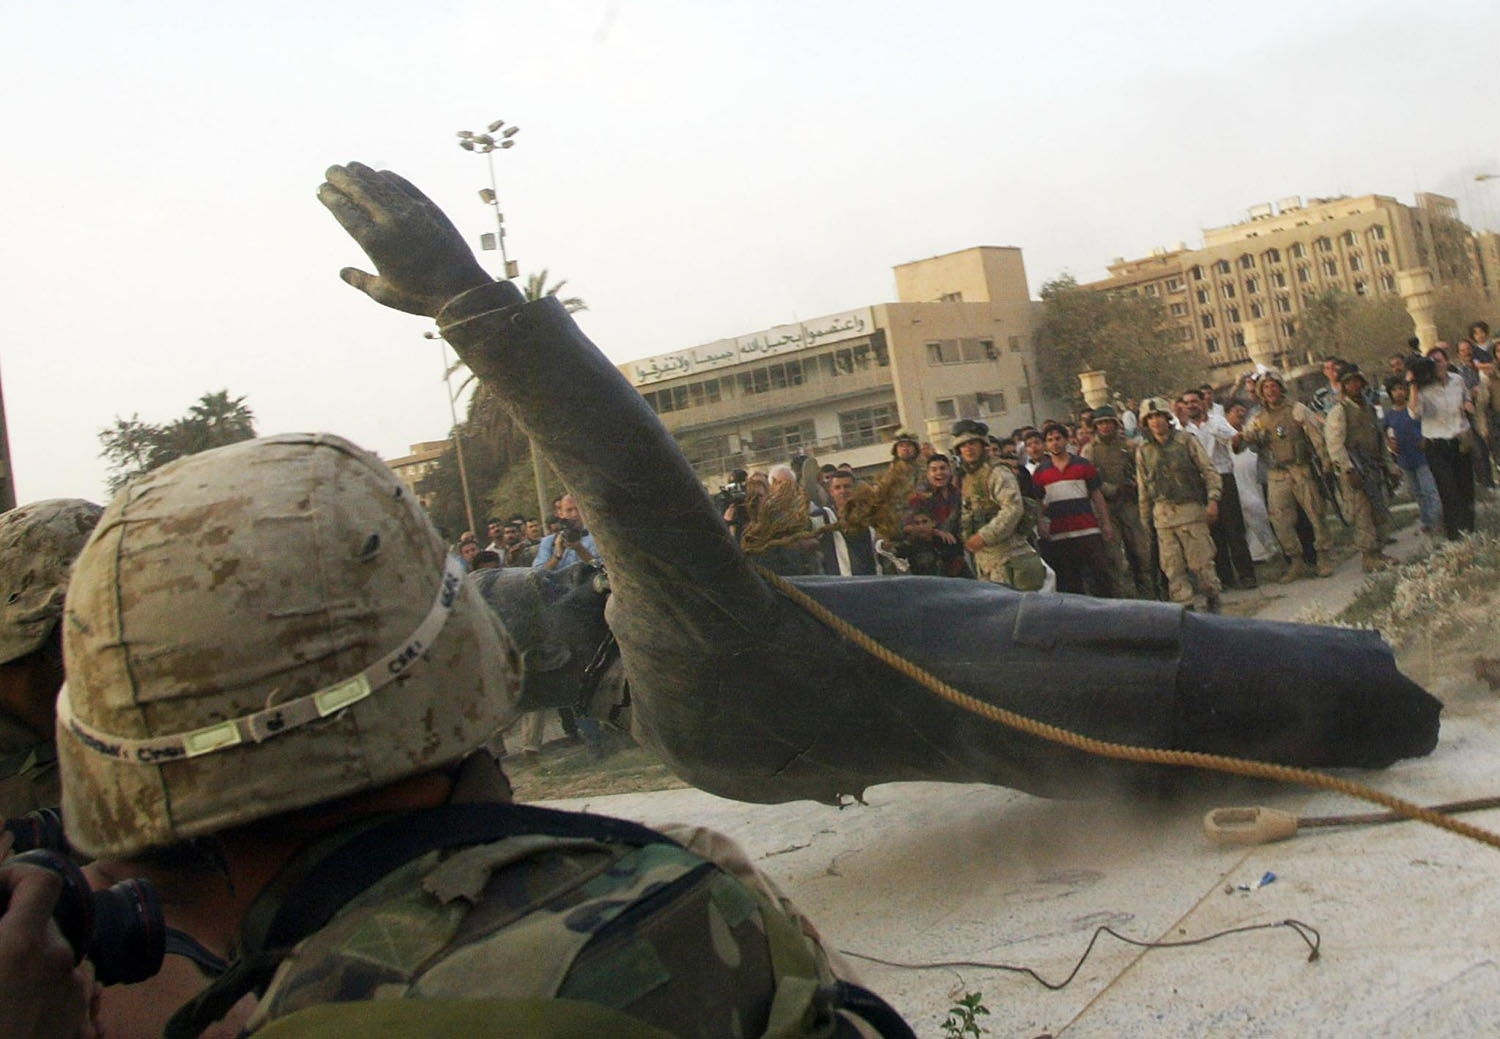 (FILES) In this file photo taken on April 9, 2003, a statue of Saddam Hussein falls as it is pulled down by a US armoured vehicle in Baghdad's al-Fardous square.